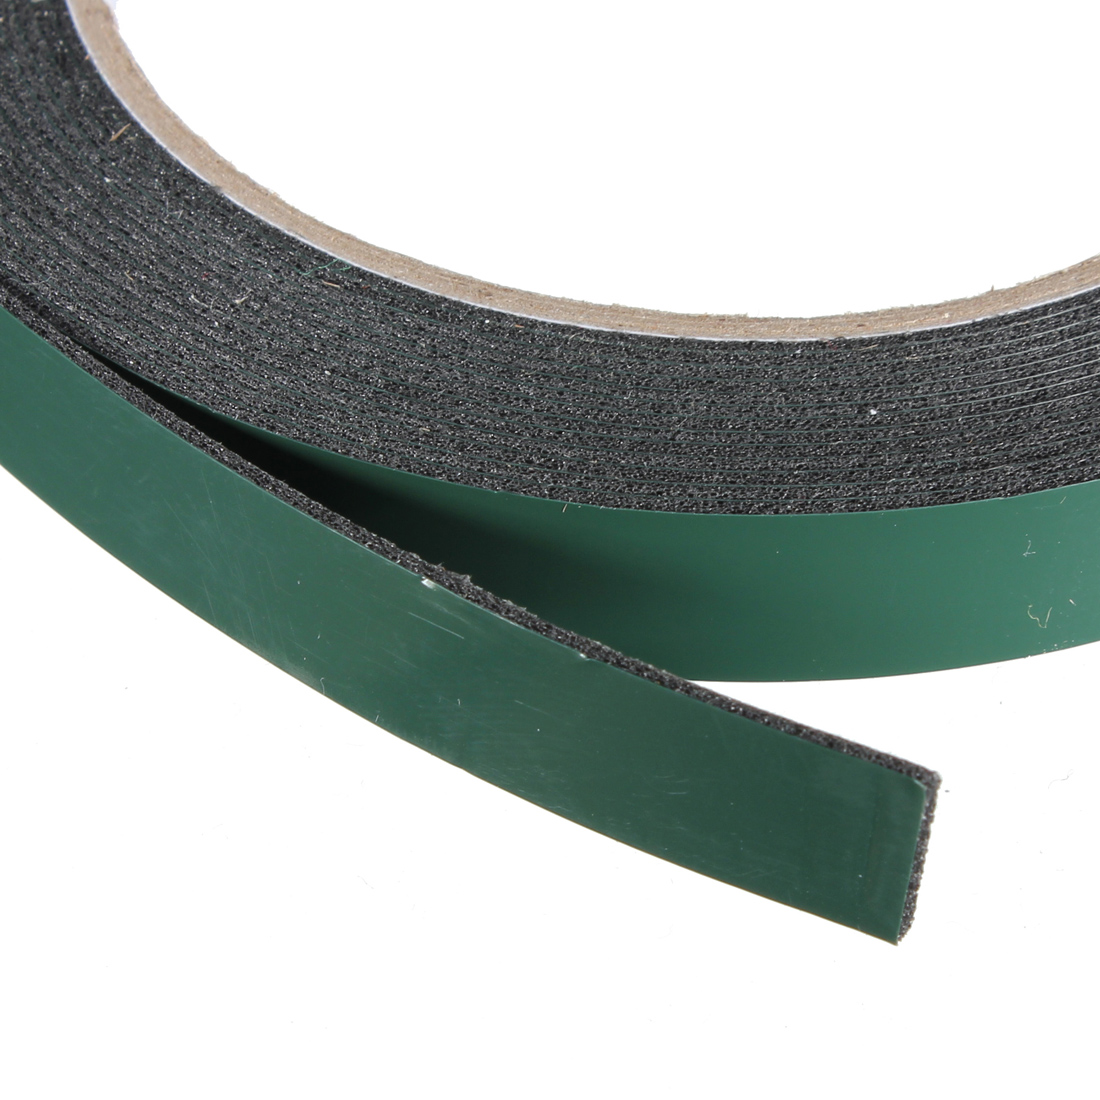 5m Double Sided Adhesive Tape Black Foam Sticker 12/19/25/50mm Width for Car Home Outdoor Fixed